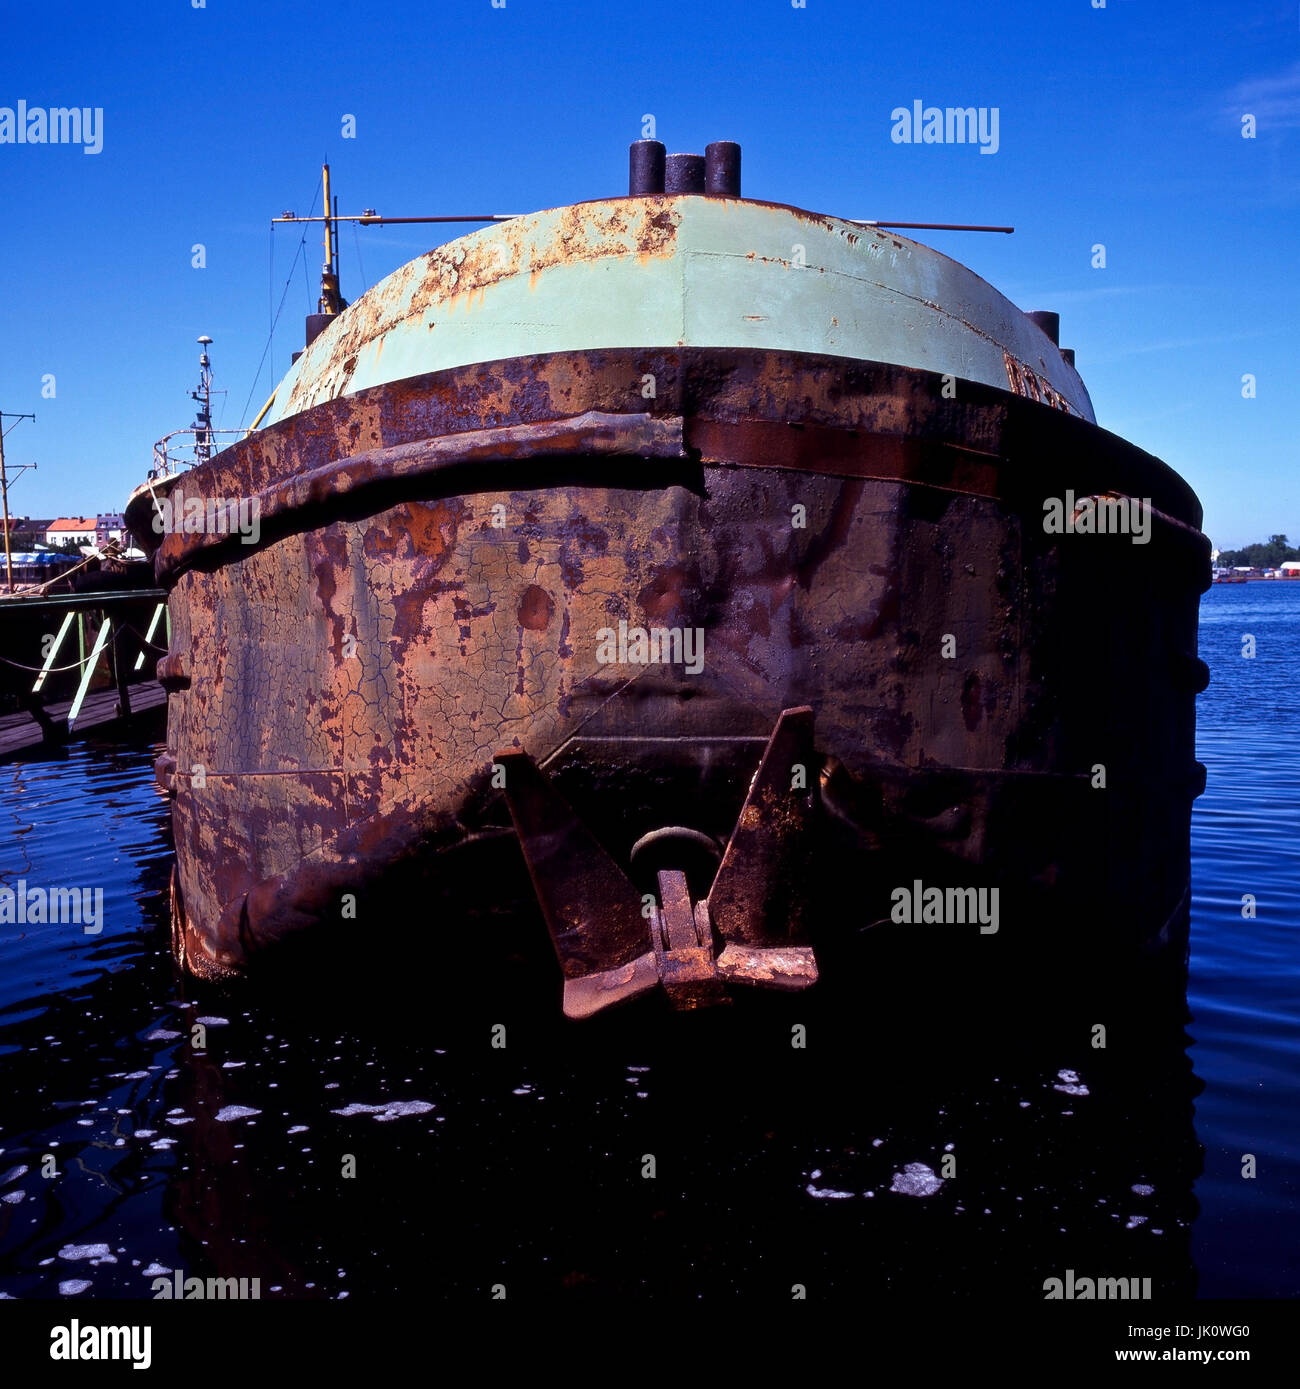 the old, rusted navigate. old and rusty ship., altes, verrostetes schiff. old and rusty ship. - Stock Image